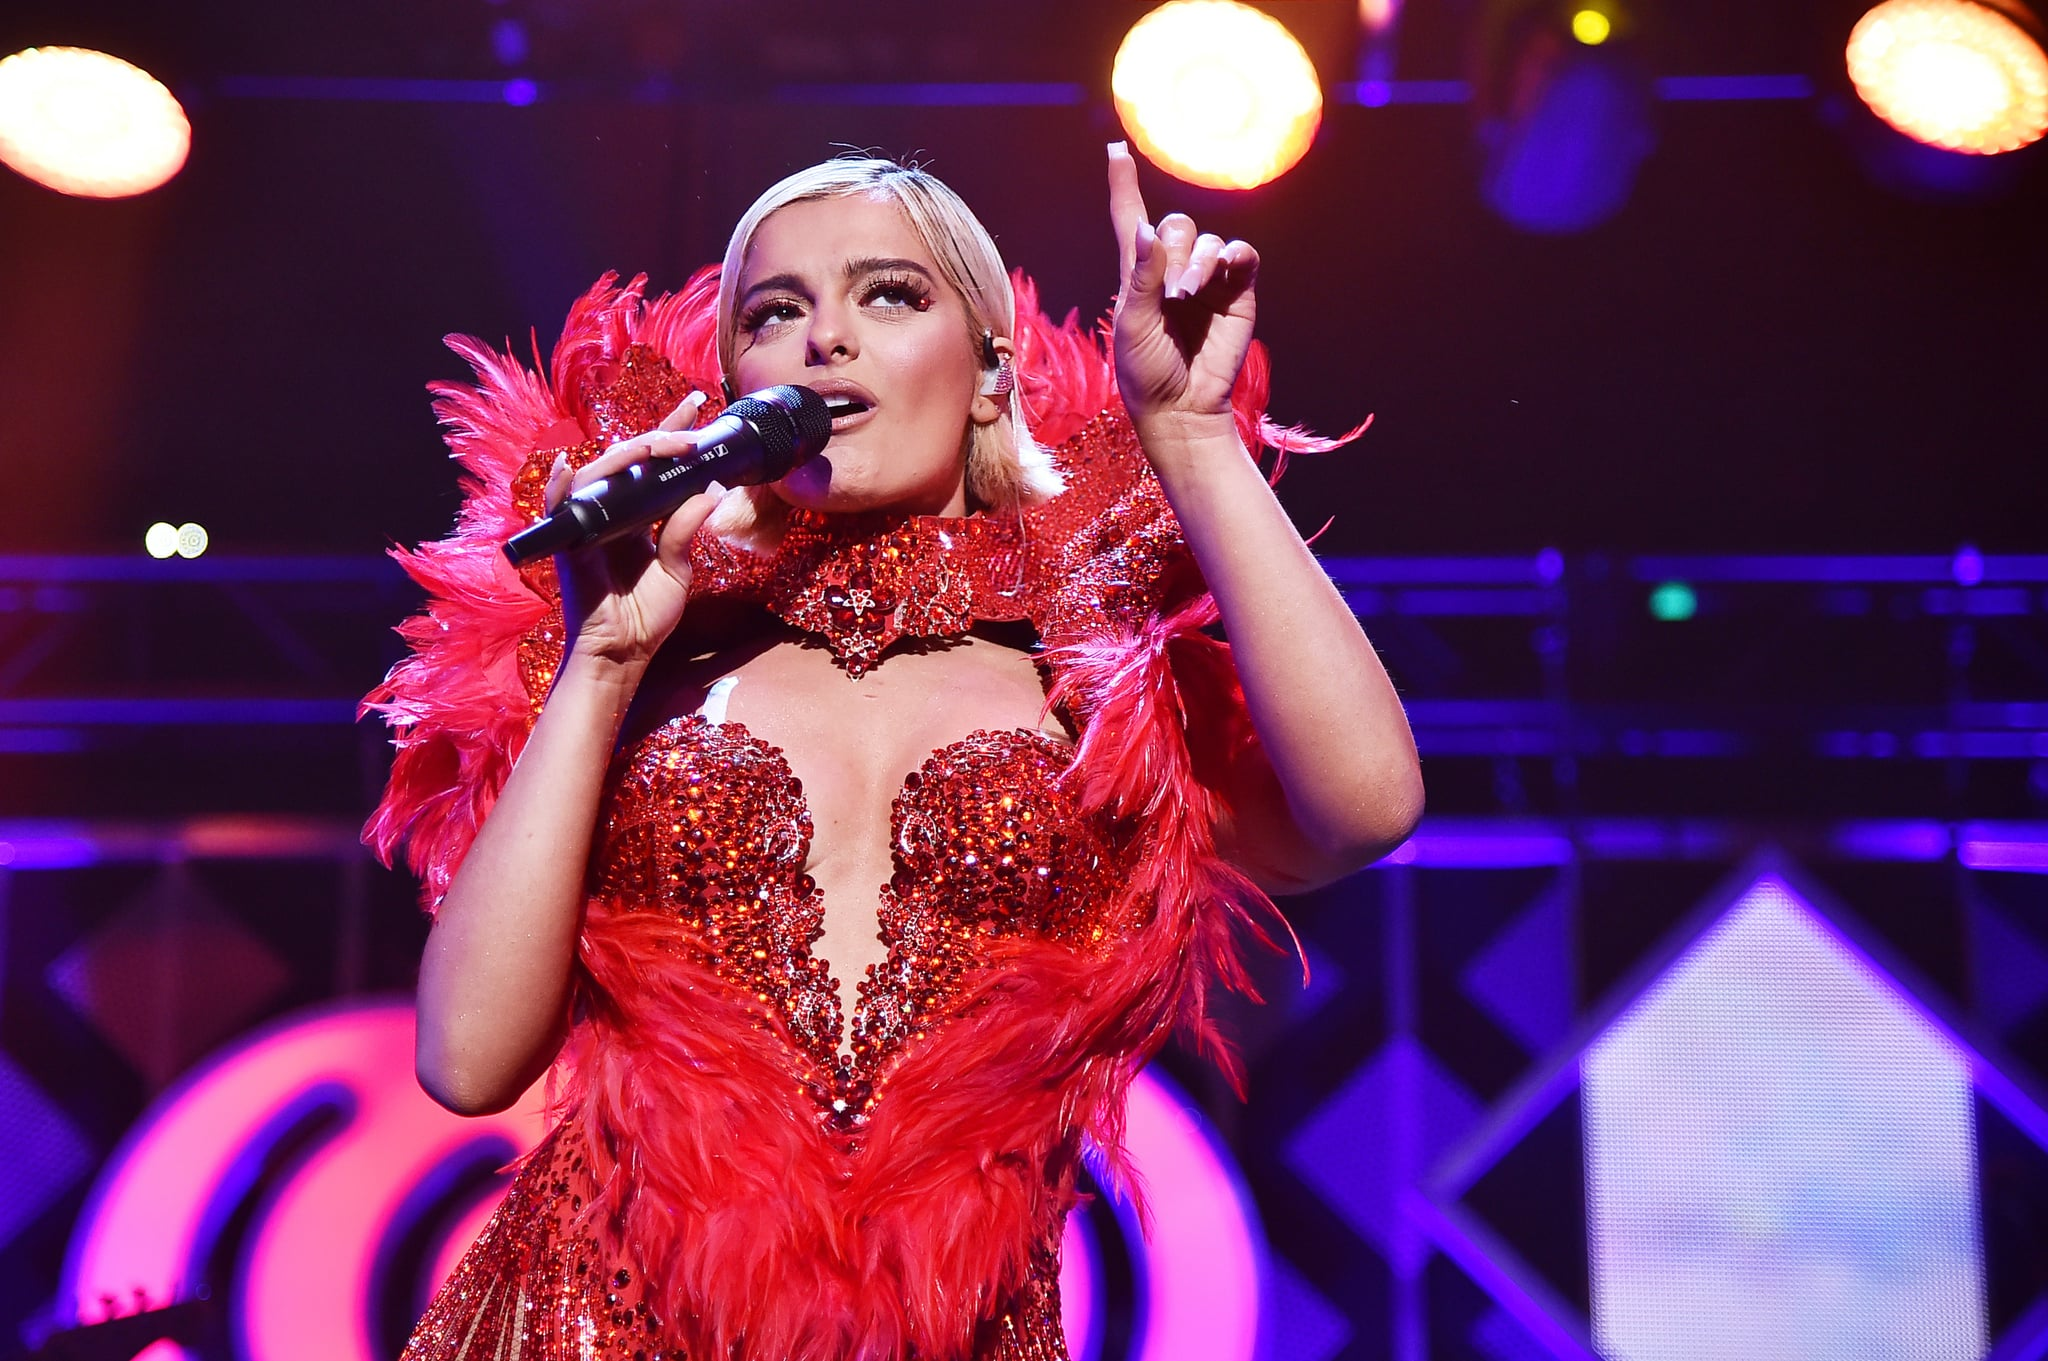 NEW YORK, NY - DECEMBER 07:  Bebe Rexha performs at Z100's Jingle Ball 2018 at Madison Square Garden on December 7, 2018 in New York City.  (Photo by Theo Wargo/Getty Images for iHeartMedia)